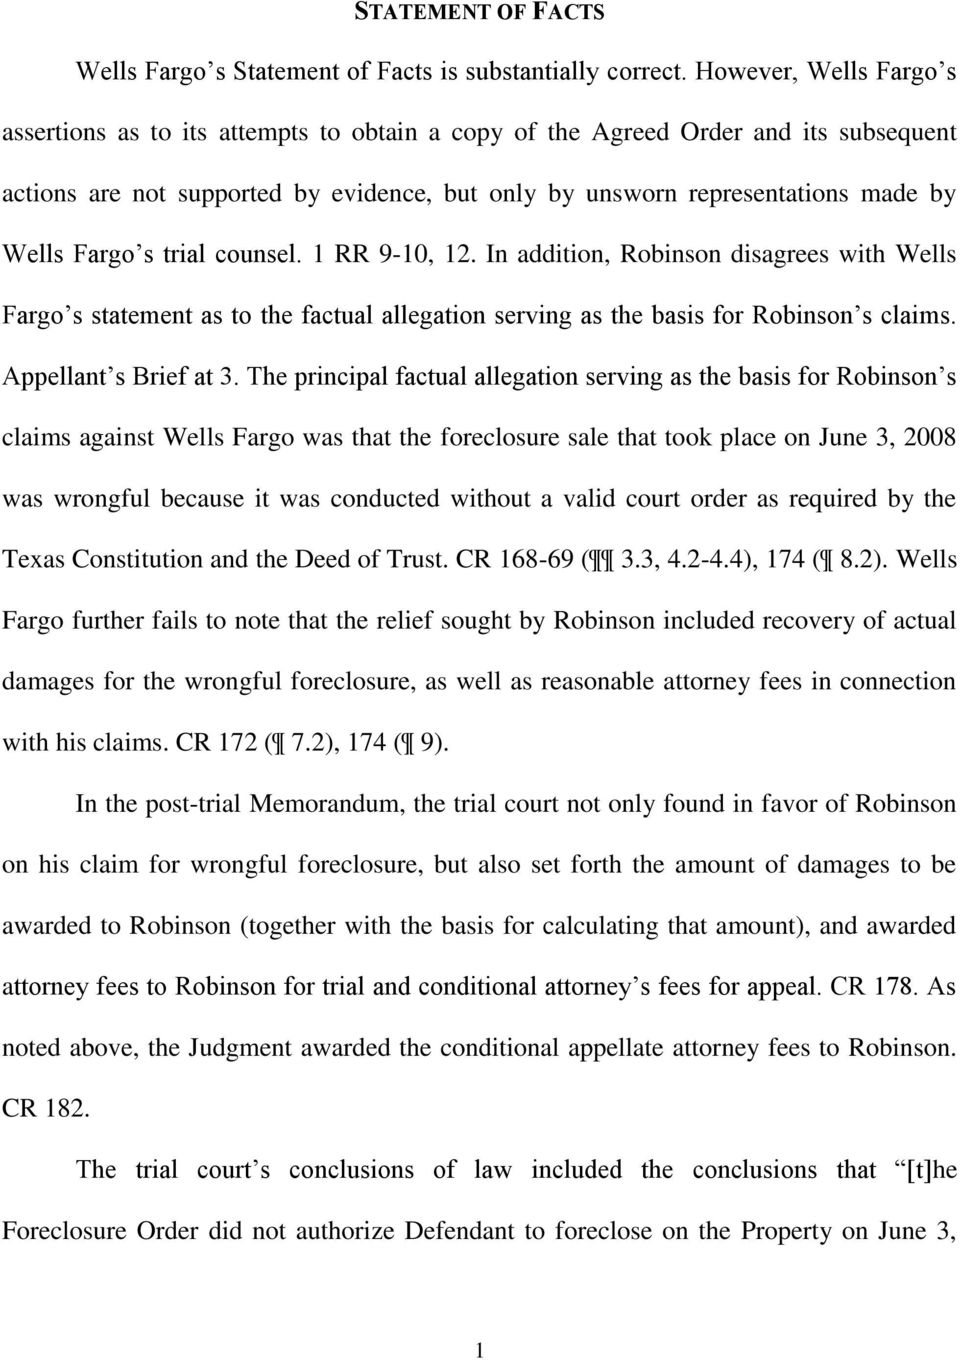 Fargo s trial counsel. 1 RR 9-10, 12. In addition, Robinson disagrees with Wells Fargo s statement as to the factual allegation serving as the basis for Robinson s claims. Appellant s Brief at 3.